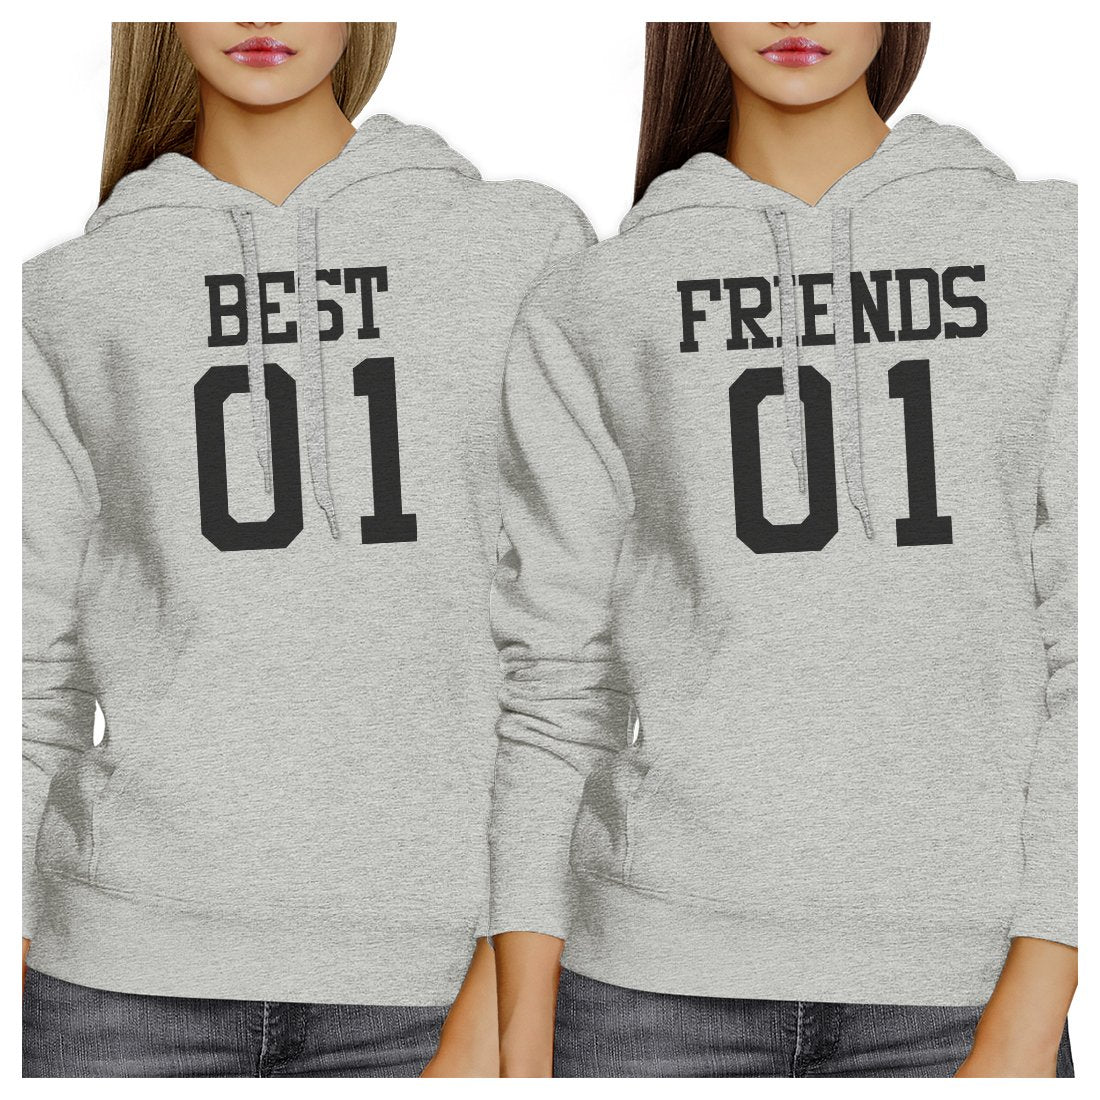 Best01 Friends01 BFF Matching Grey Hoodies